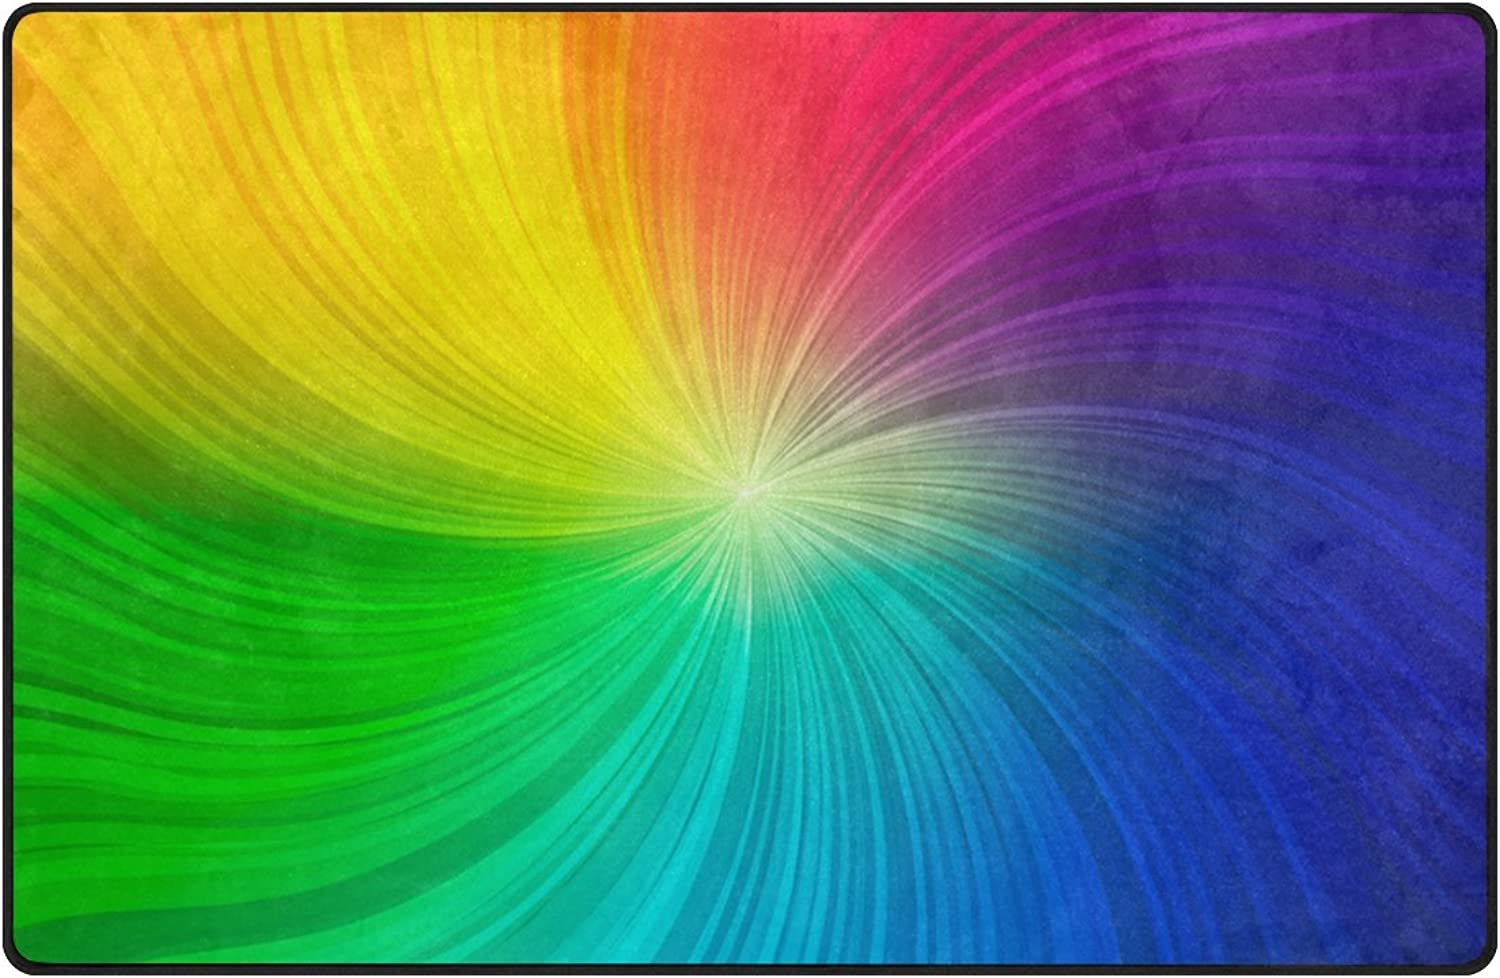 U LIFE Rainbow colorful Striped Spiral Large Doormats Area Mats Runner Floor Mat Cover Carpet for Entrance Way Living Room Bedroom Kitchen Office 72 x 48 Inch